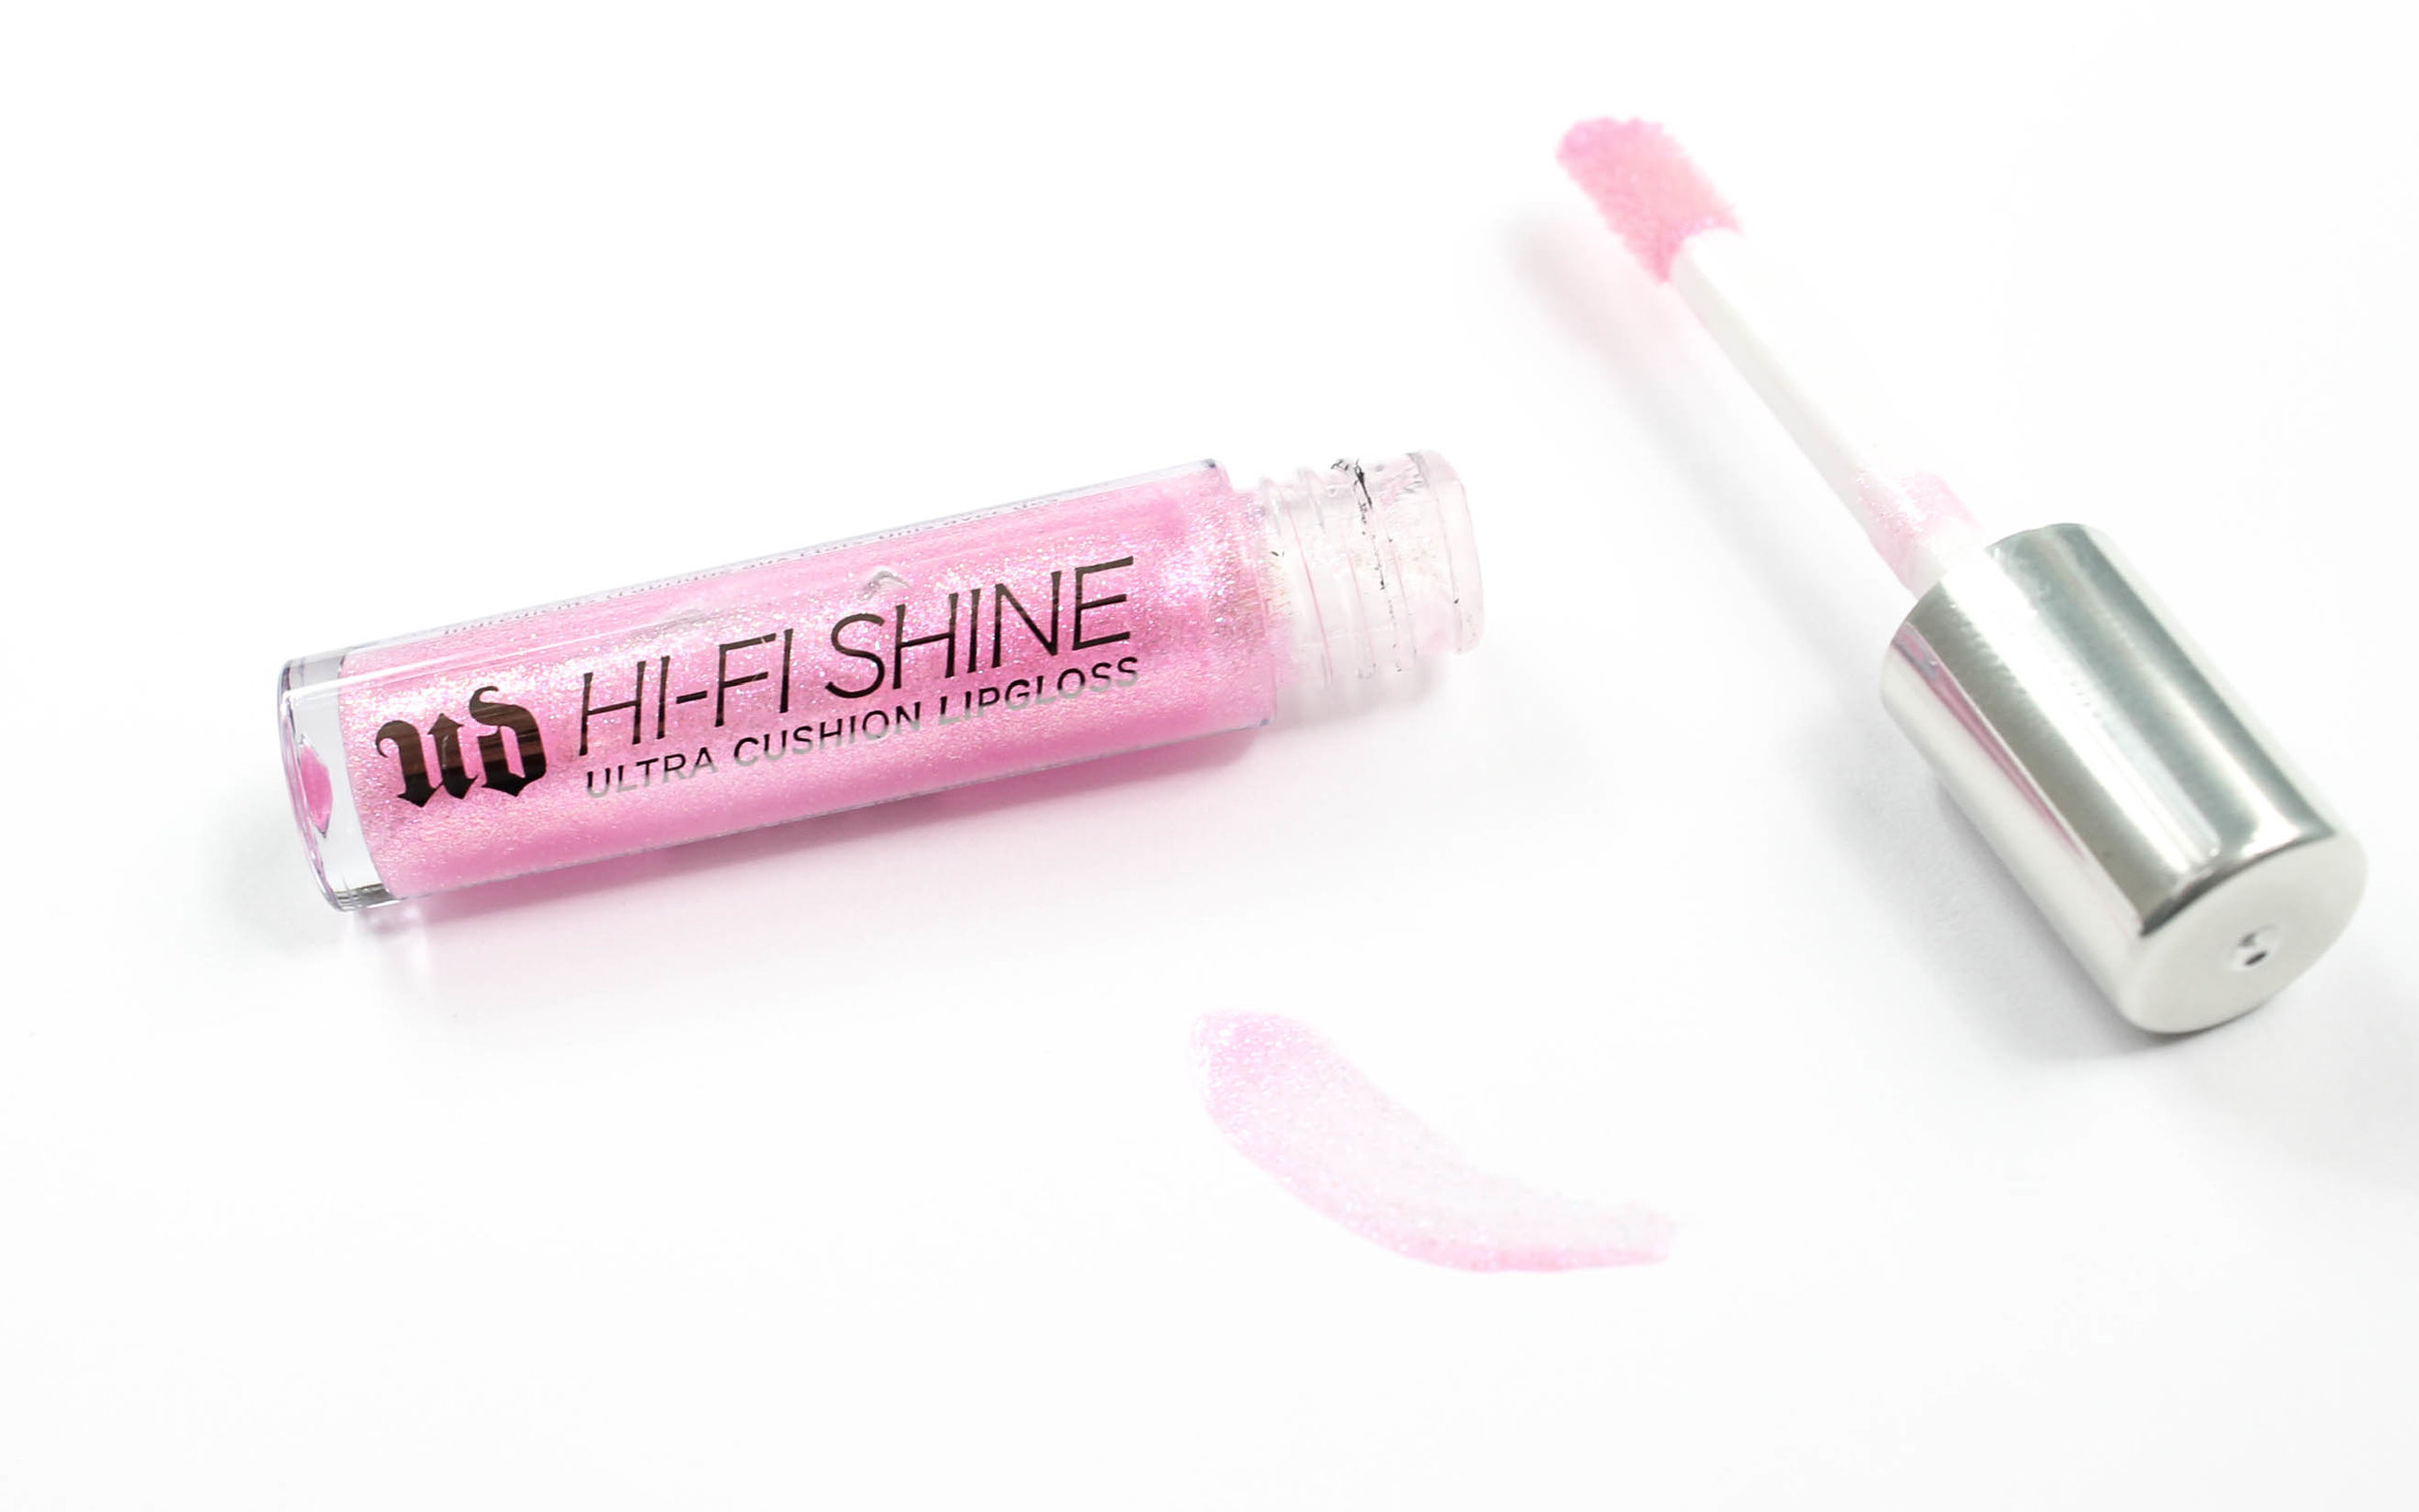 urban decay hi-fi shine ultra cushion holographic lipgloss